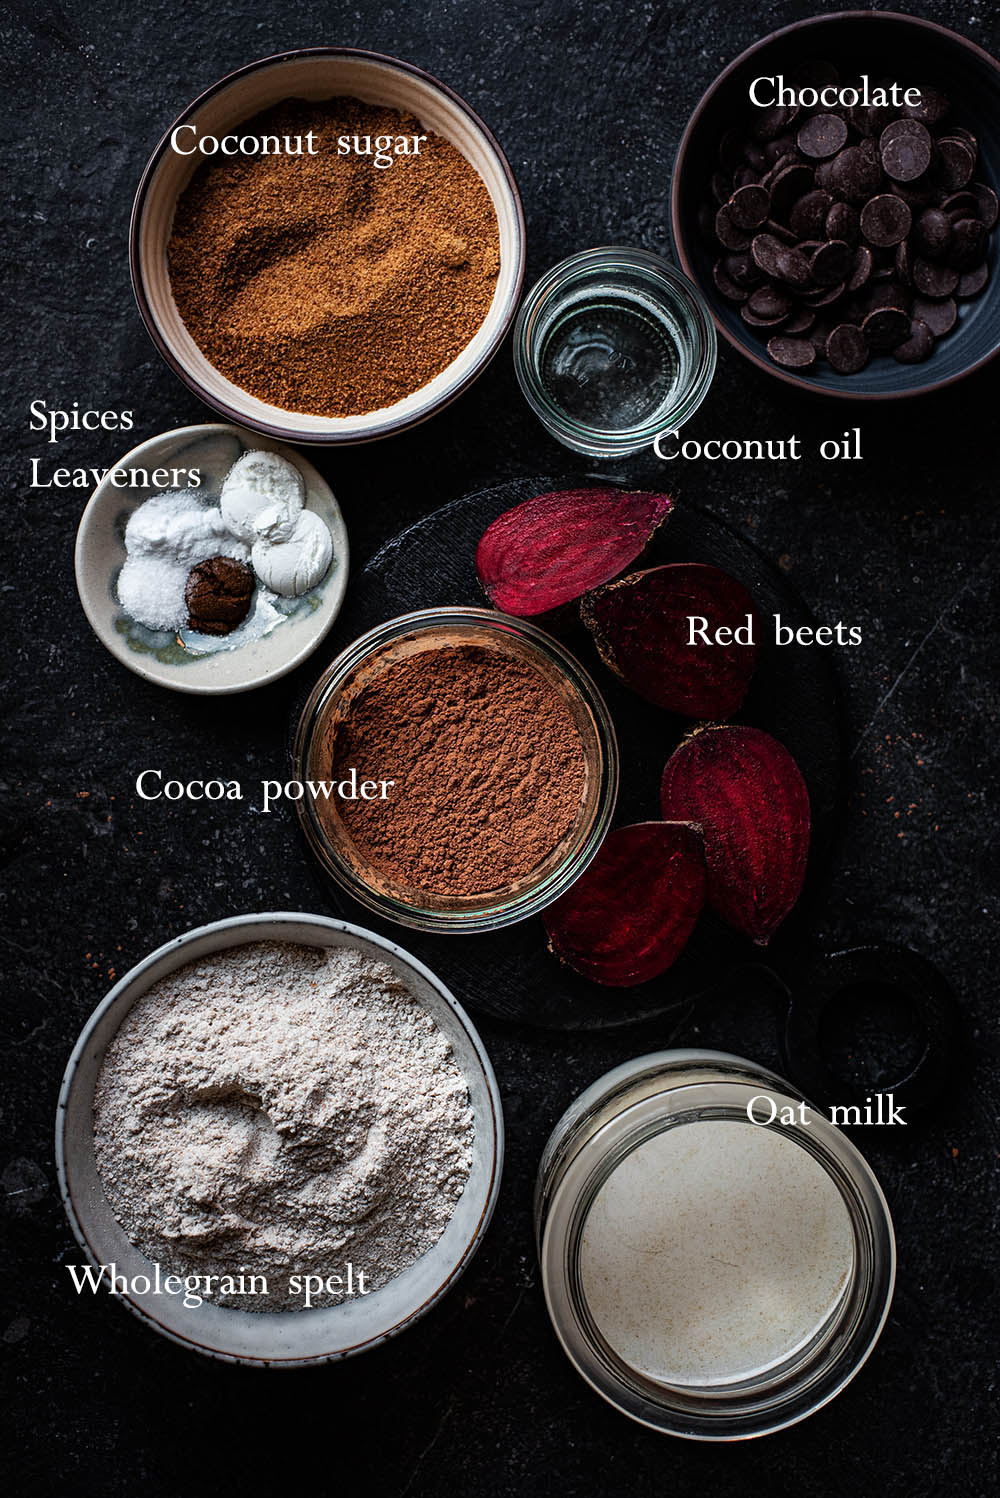 Chocolate beet muffin ingredients.